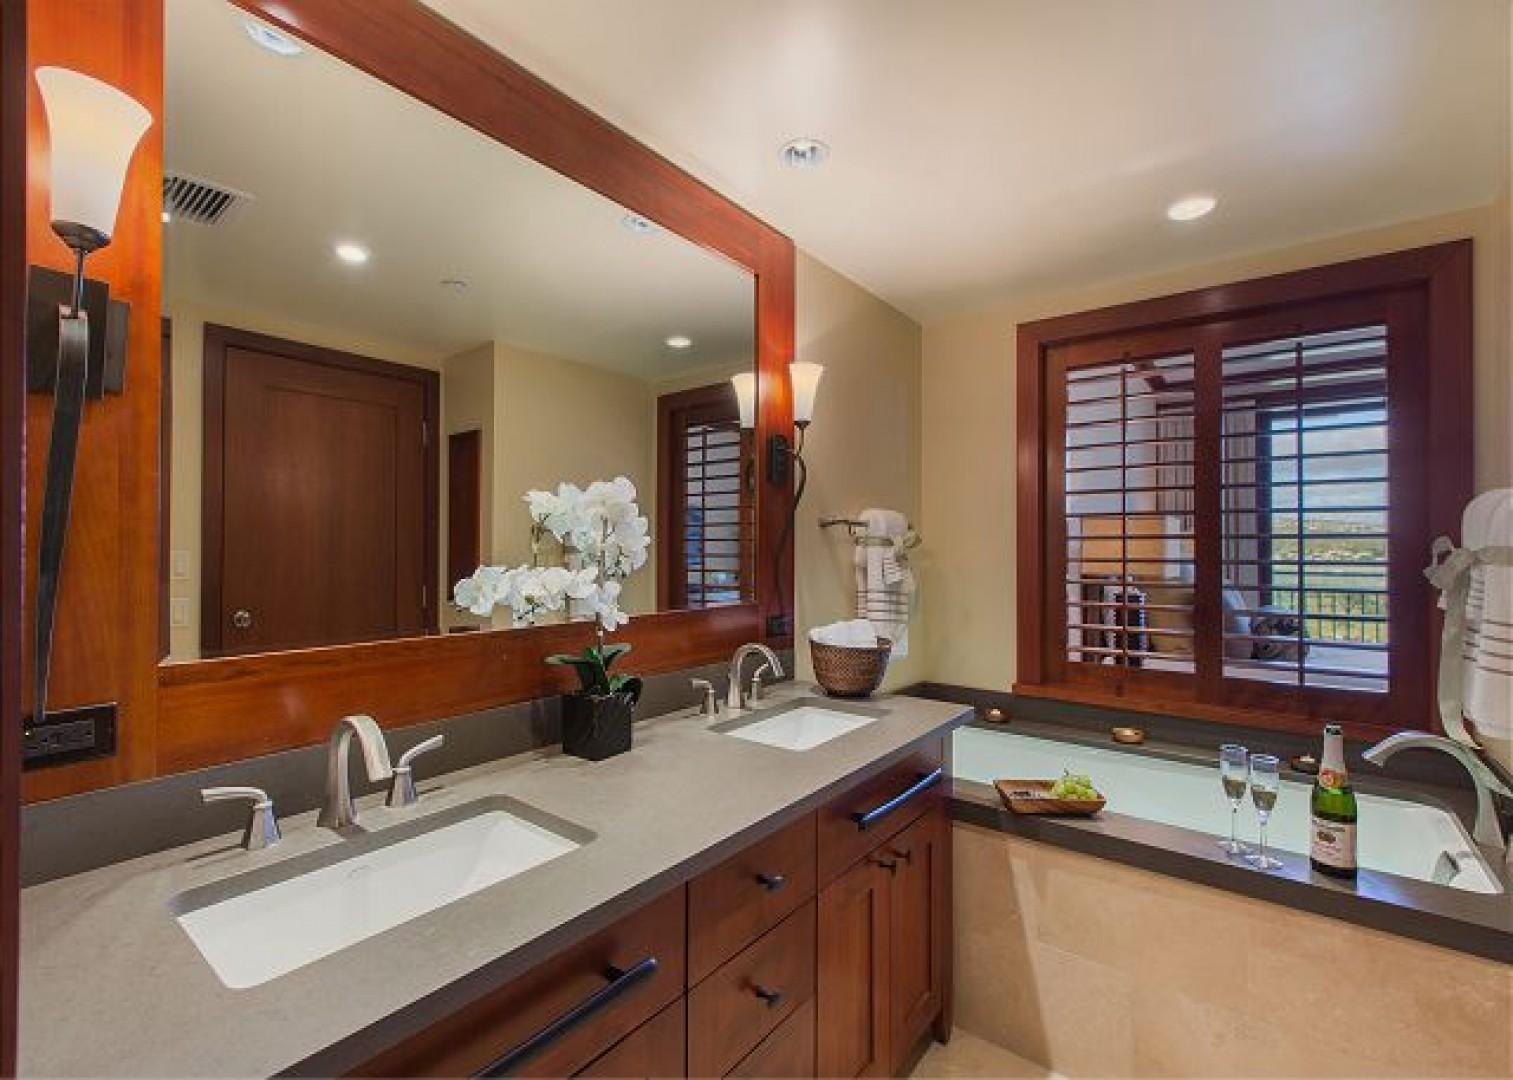 Master bathroom with shower and separate soaking tub. Includes d